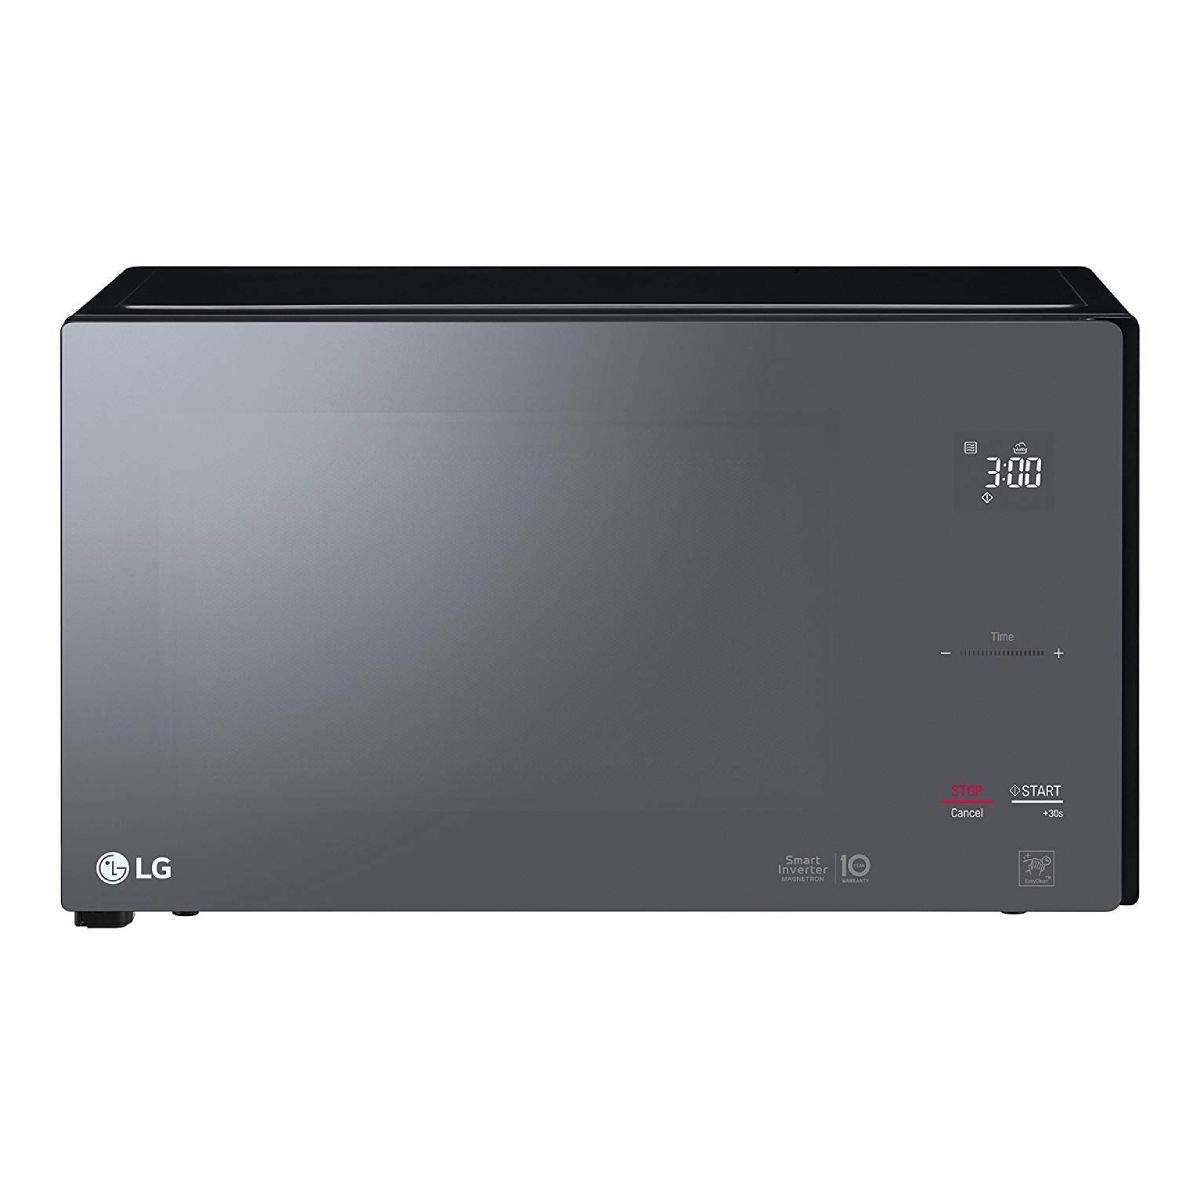 एलजी MS4295DIS 42 L Solo Microwave Oven